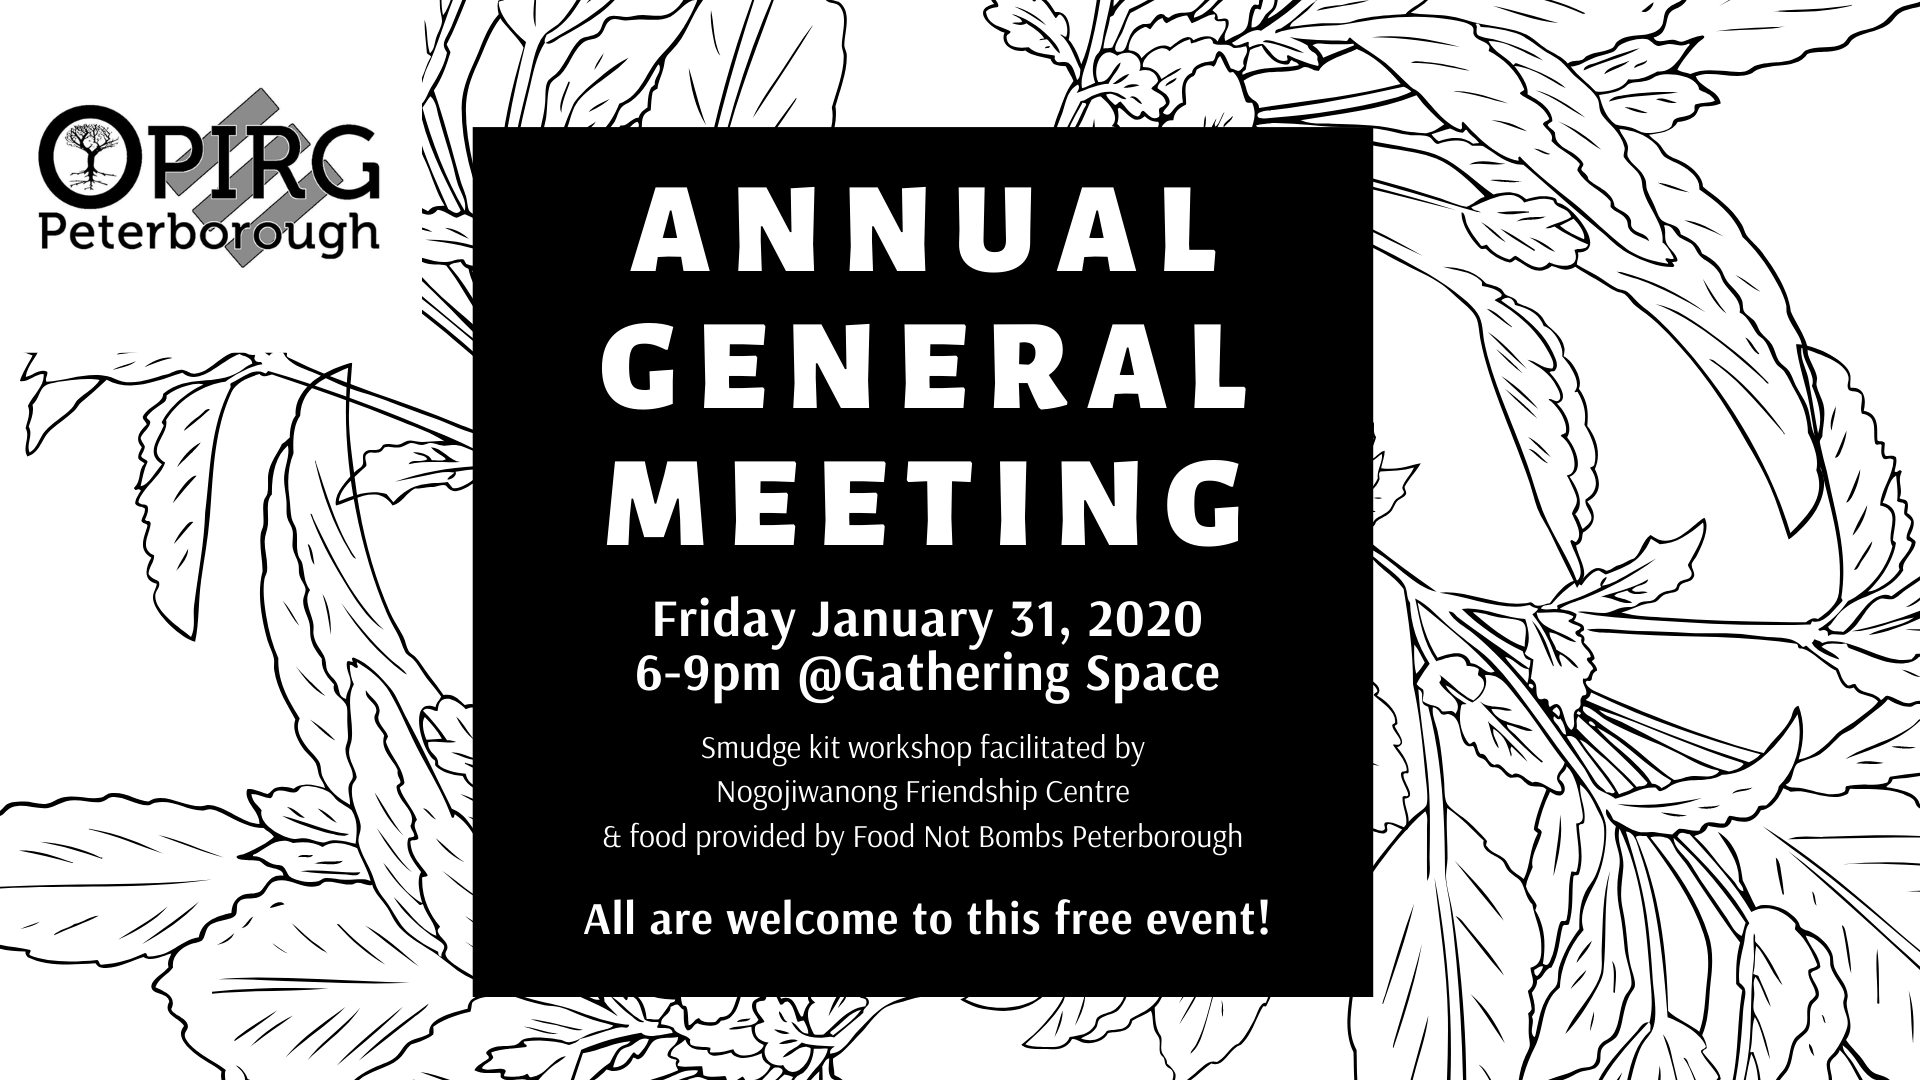 This Friday: OPIRG Peterborough's Annual General Meeting